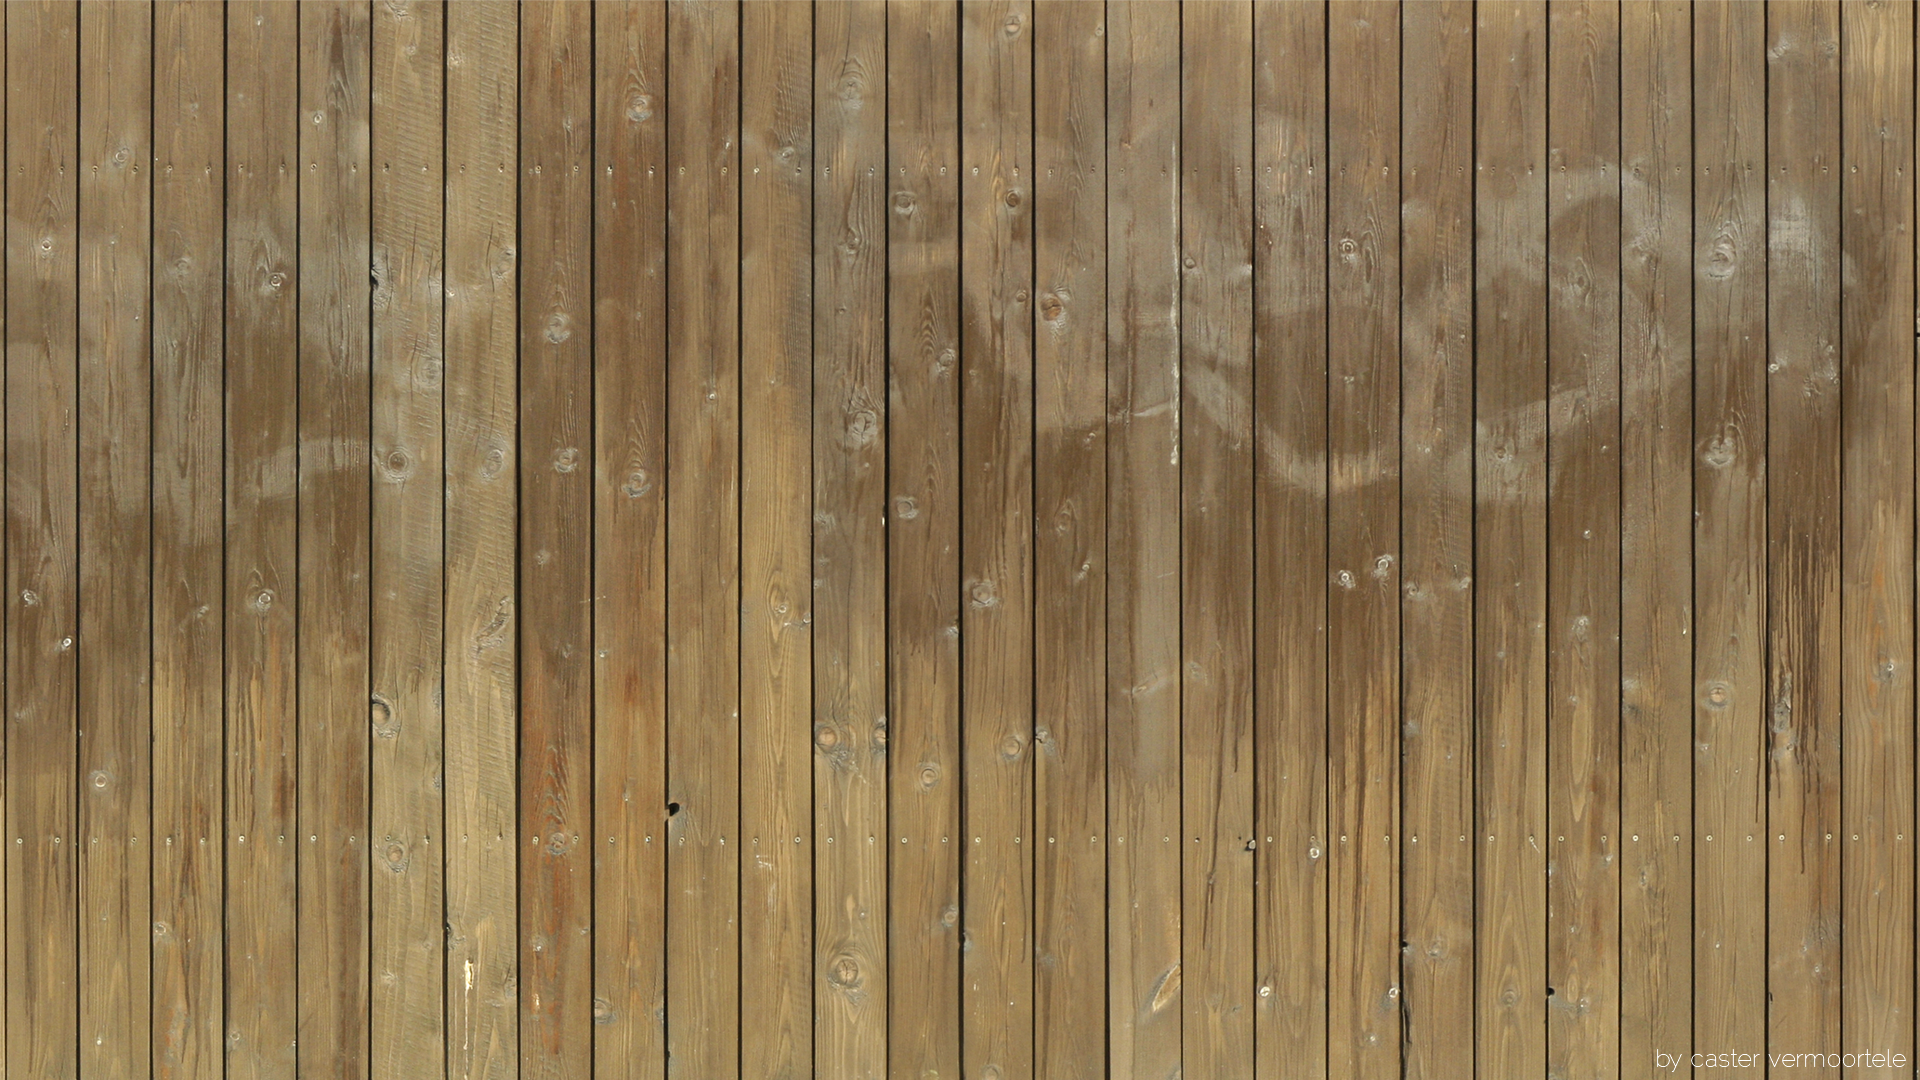 wood-floor-texture-1920%C3%971080-wallpaper-wpc90010775